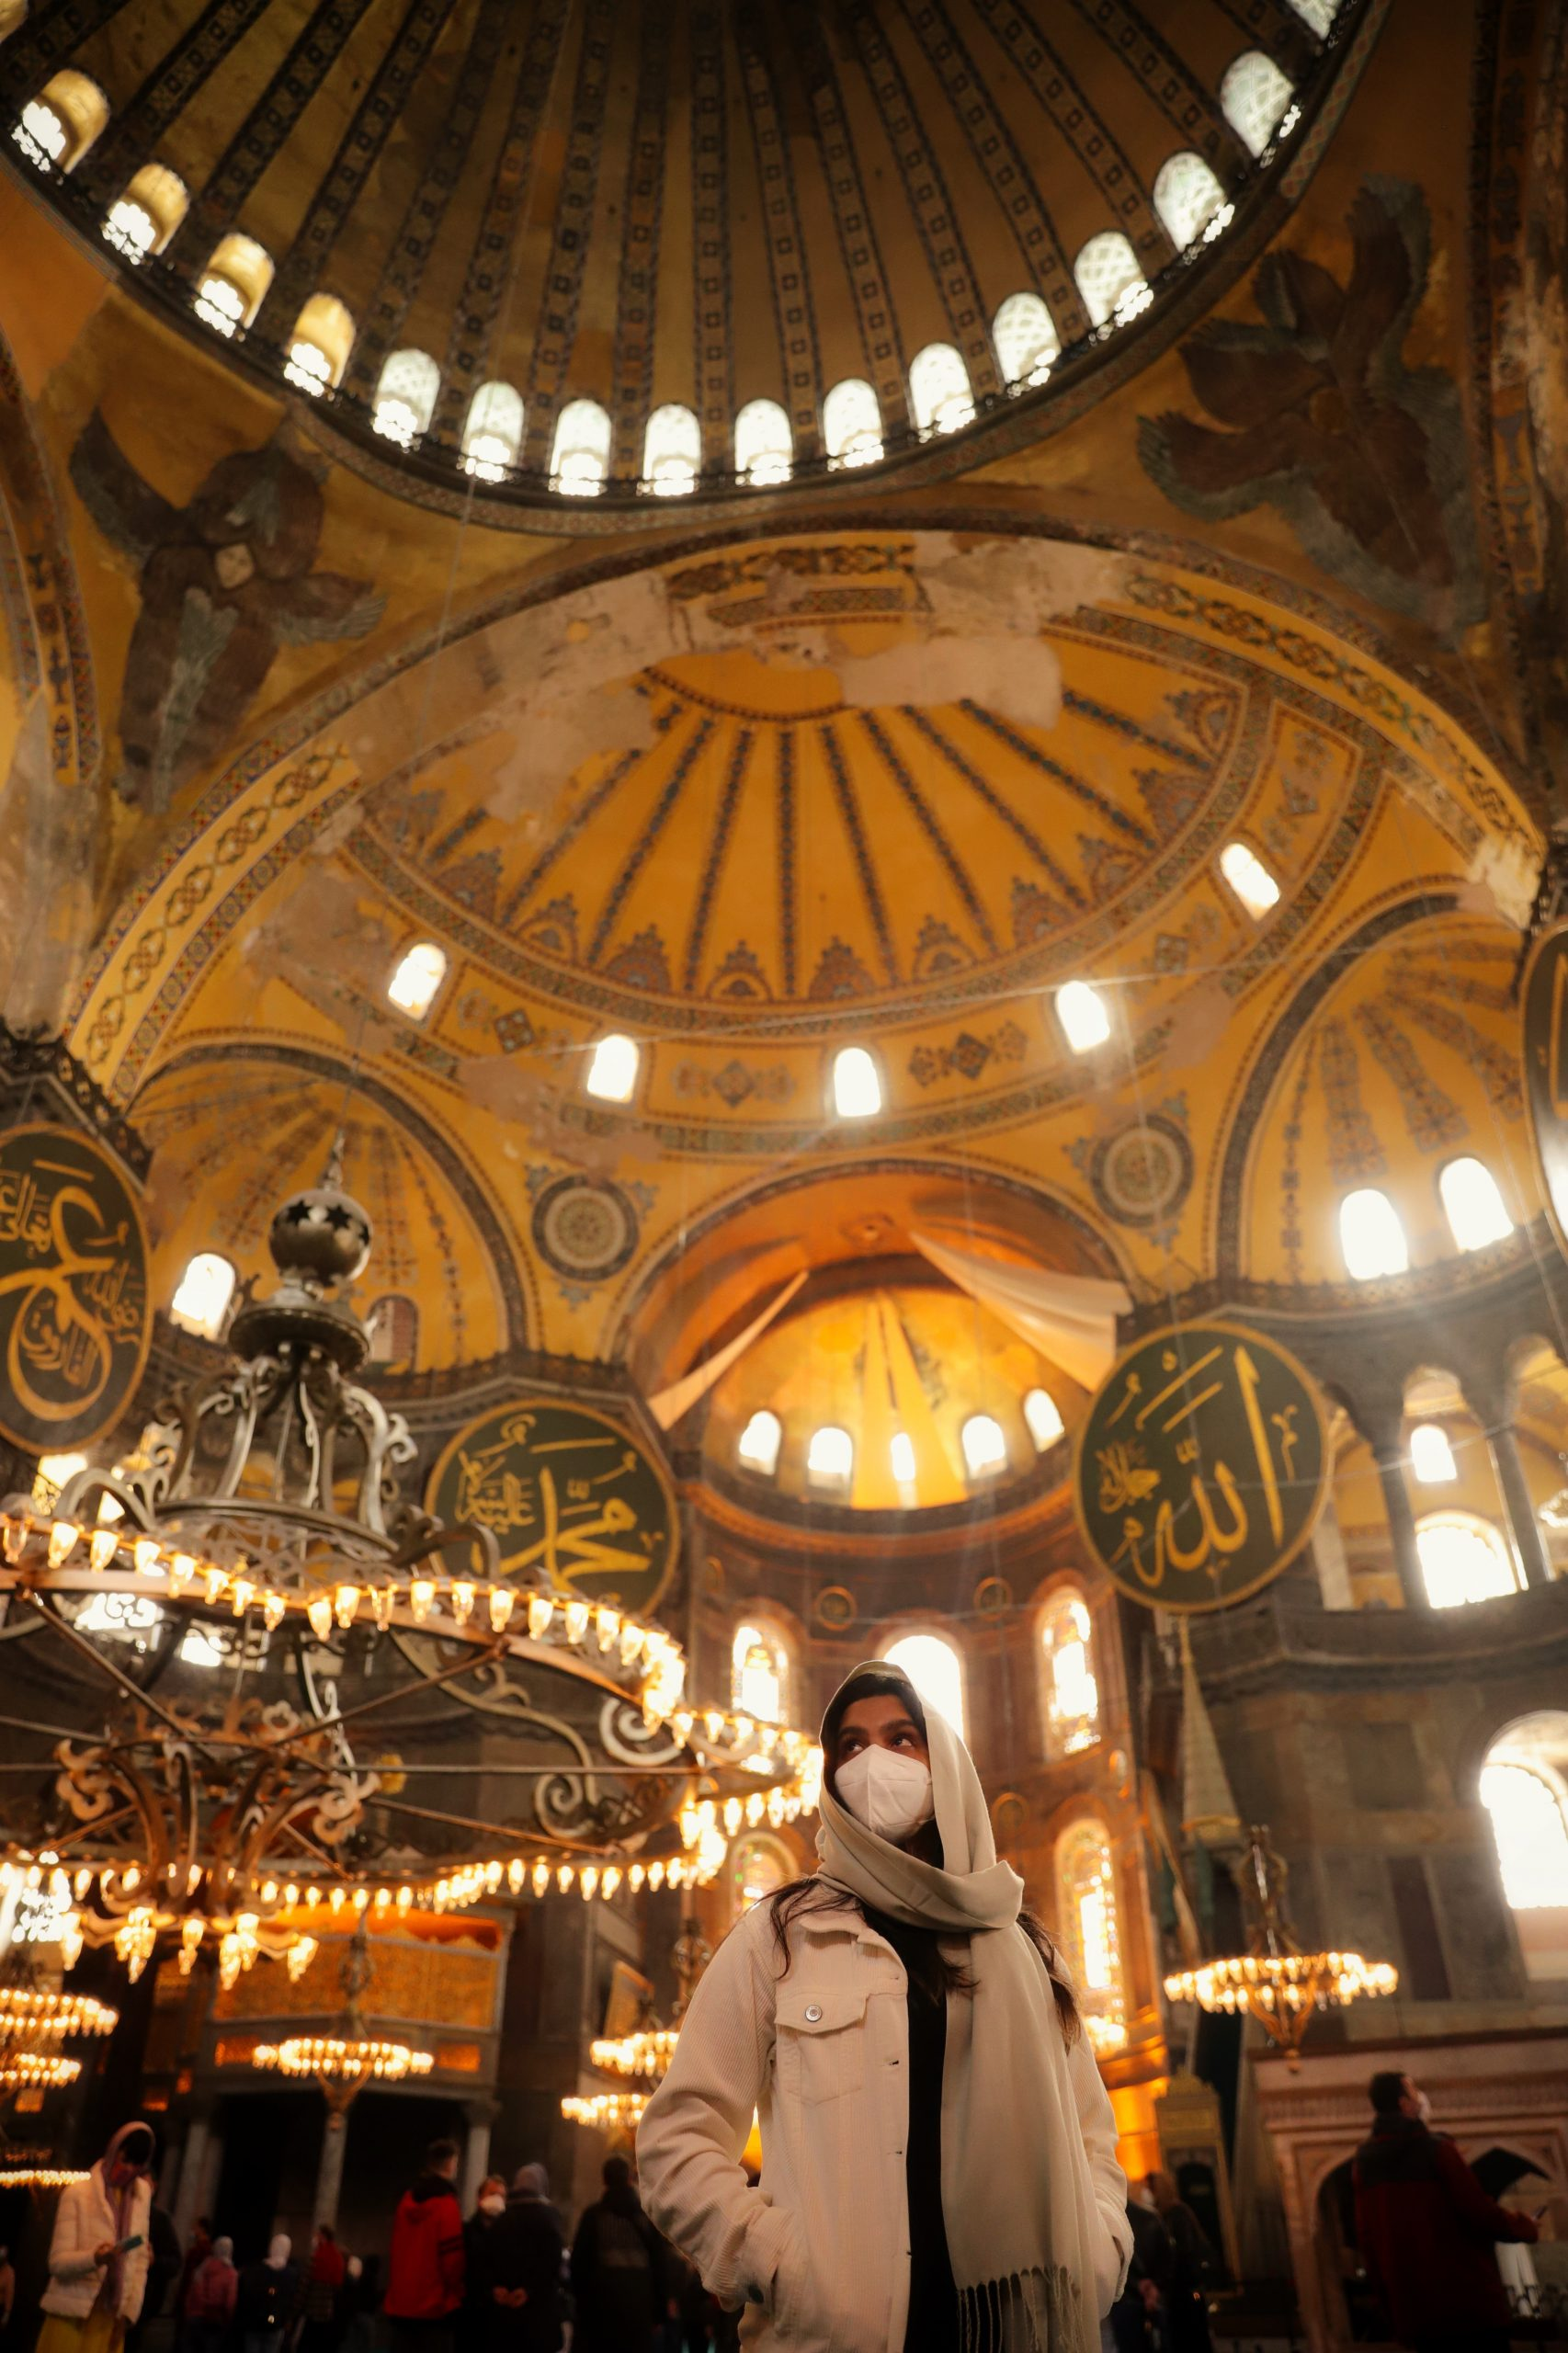 woman in mask poses in interior of domed building with intricate artwork